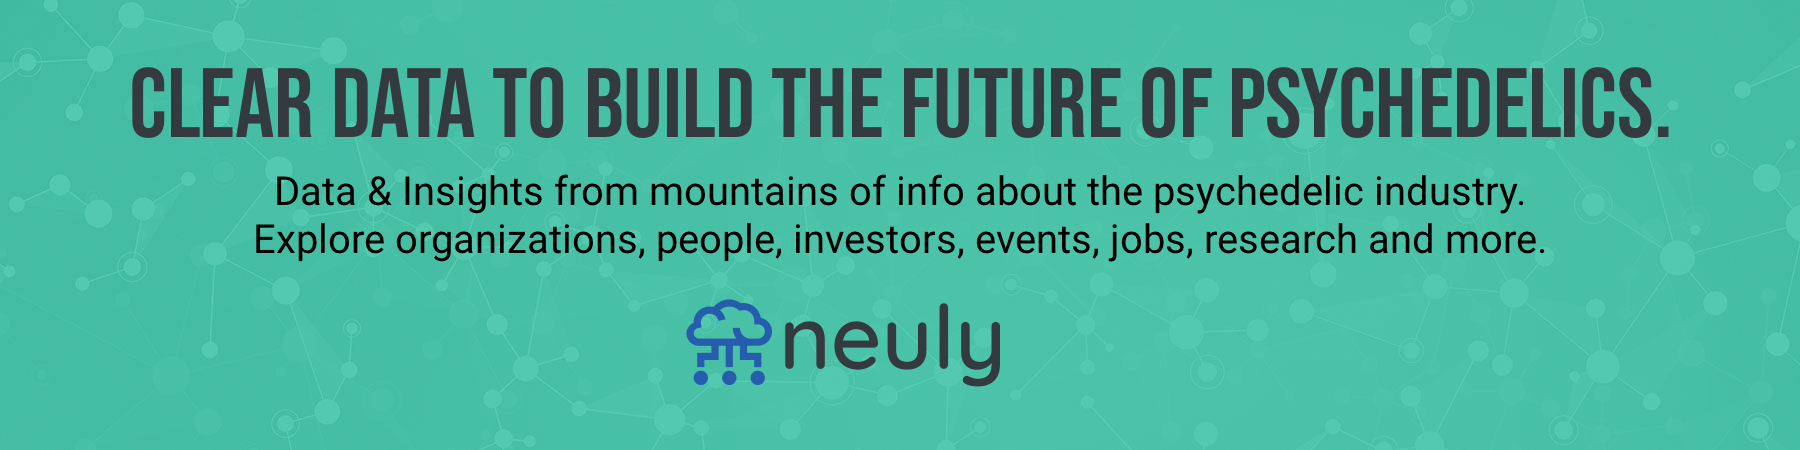 Neuly - data and insights for the psychedelic industry